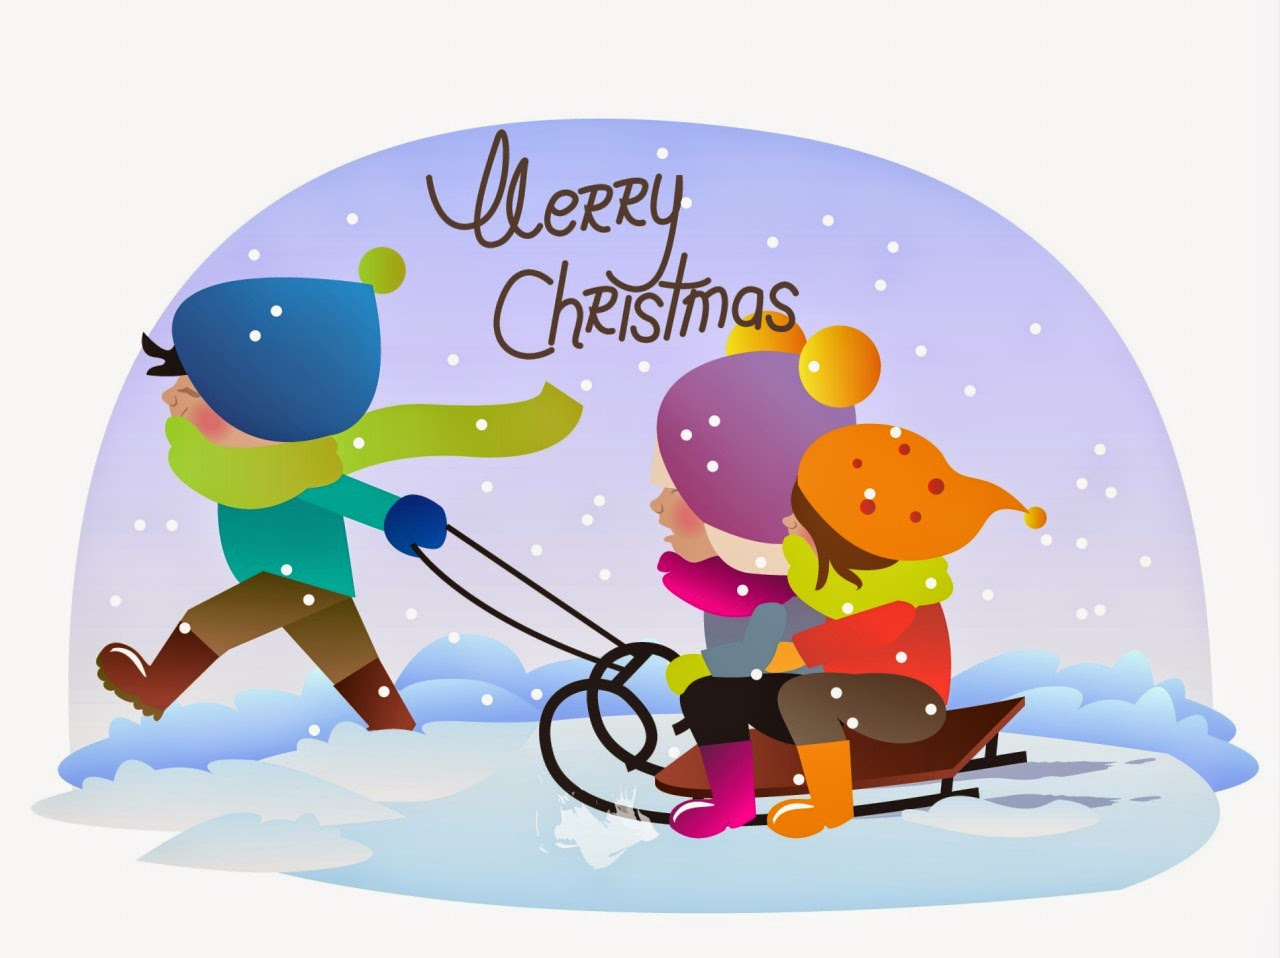 Merry-Christmas-kids-playing-in-snow-cartoon-template-card-free-download.jpg